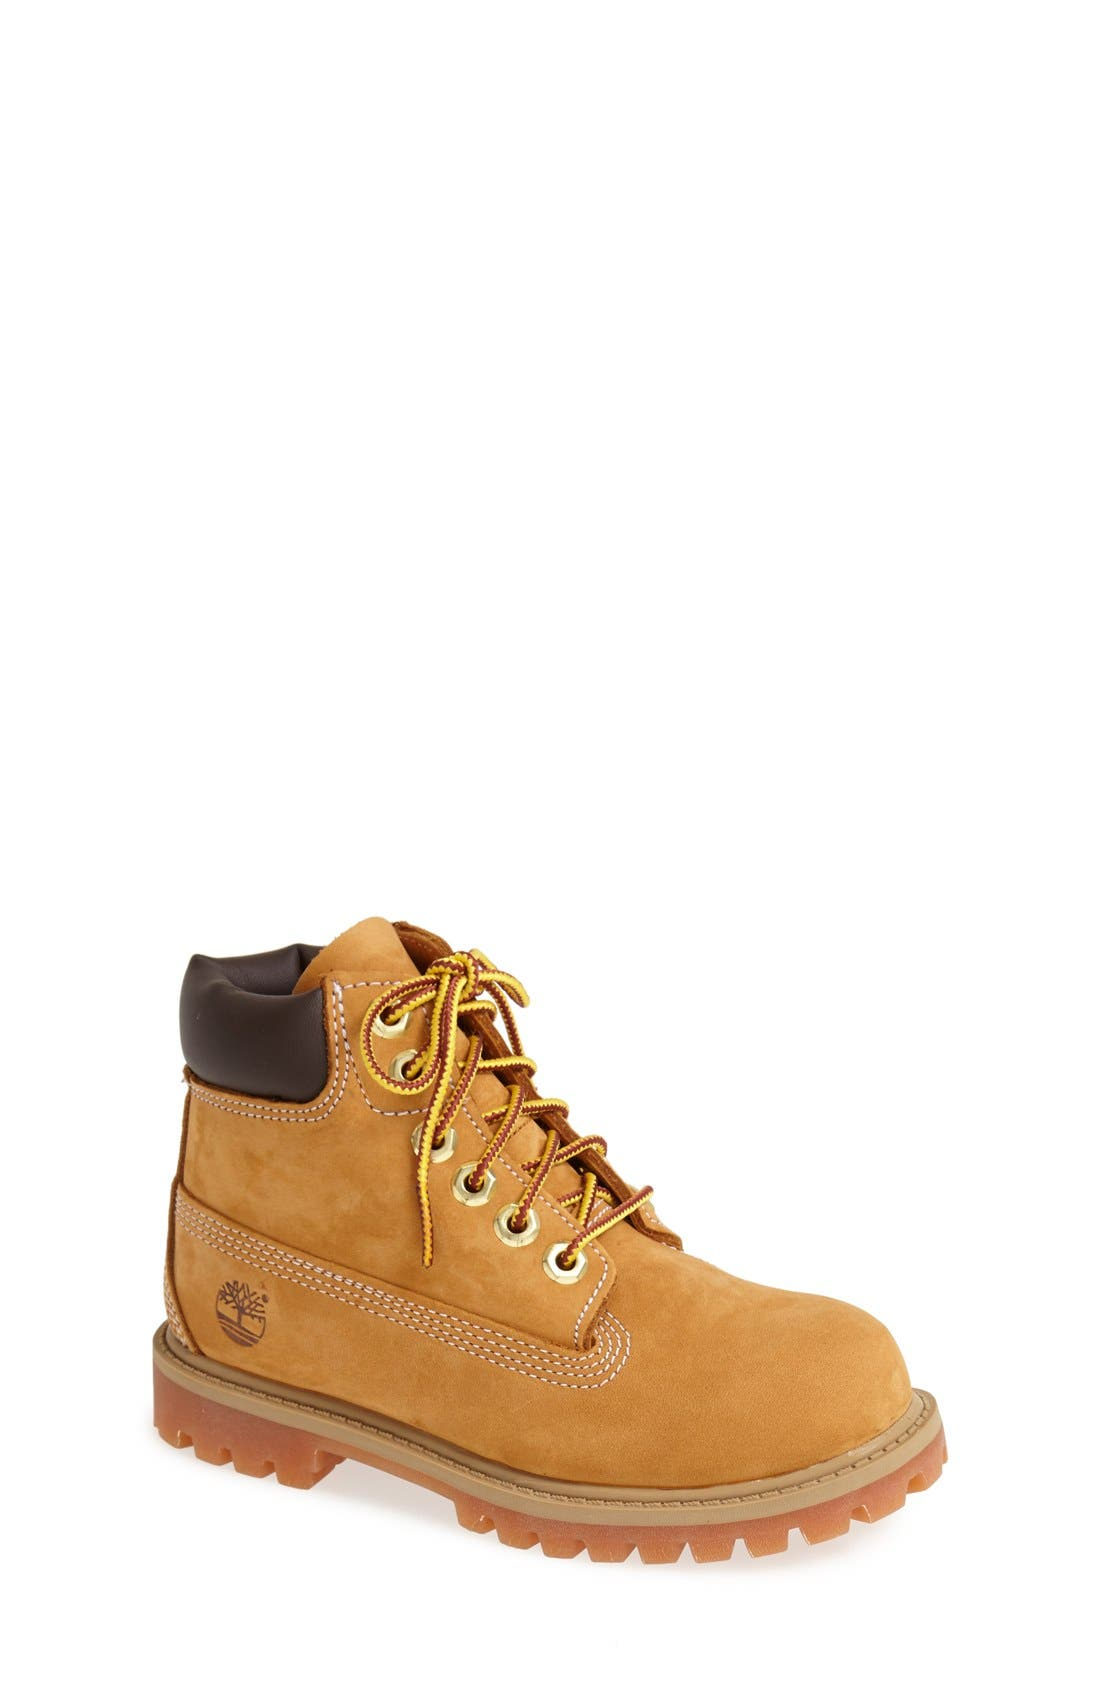 Alternate Image 1 Selected - Timberland '6 Premium' Waterproof Leather Boot (Walker & Toddler)